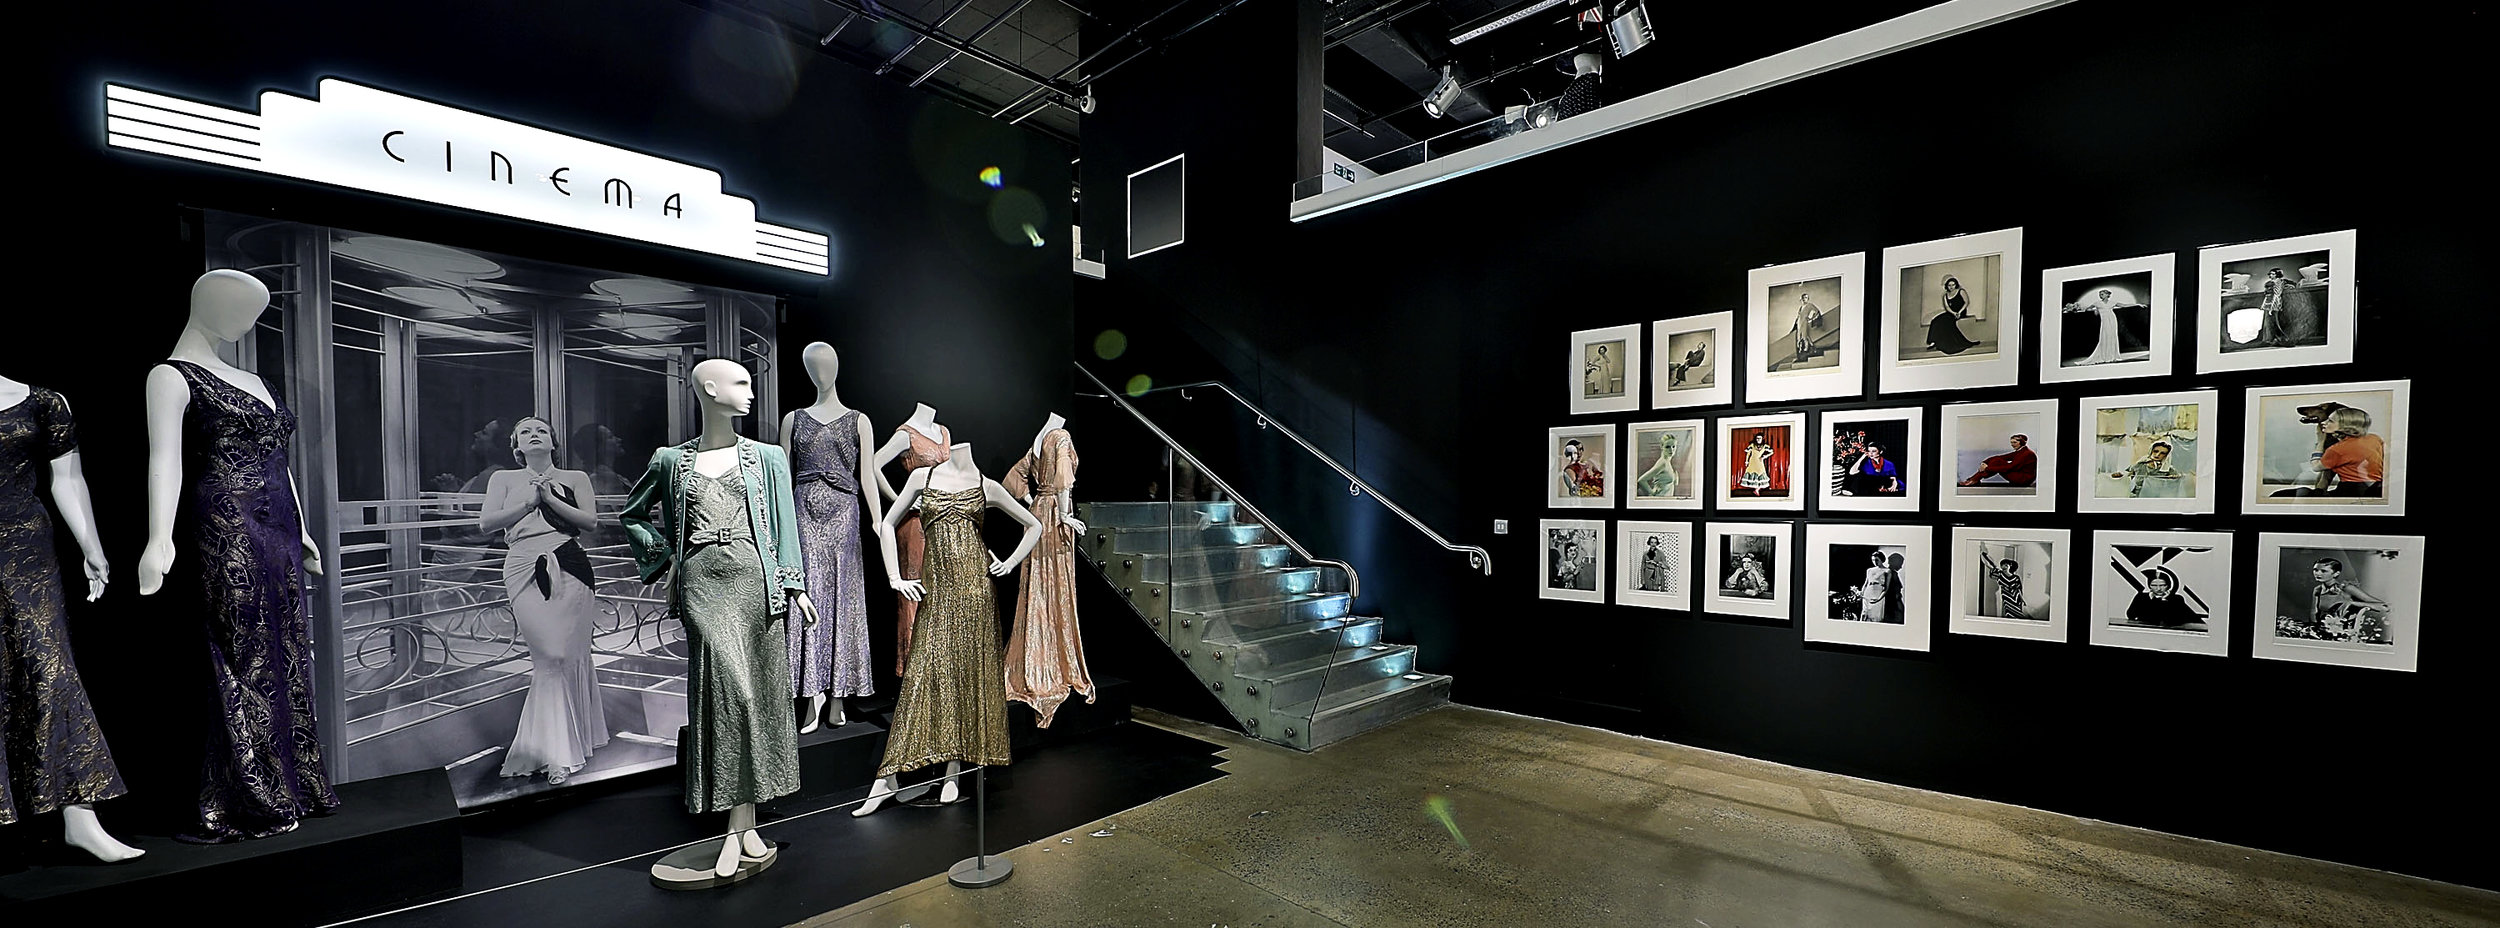 'Somewhere Over the Rainbow' section of the exhibition. Image courtesy of Fashion and Textile Museum.